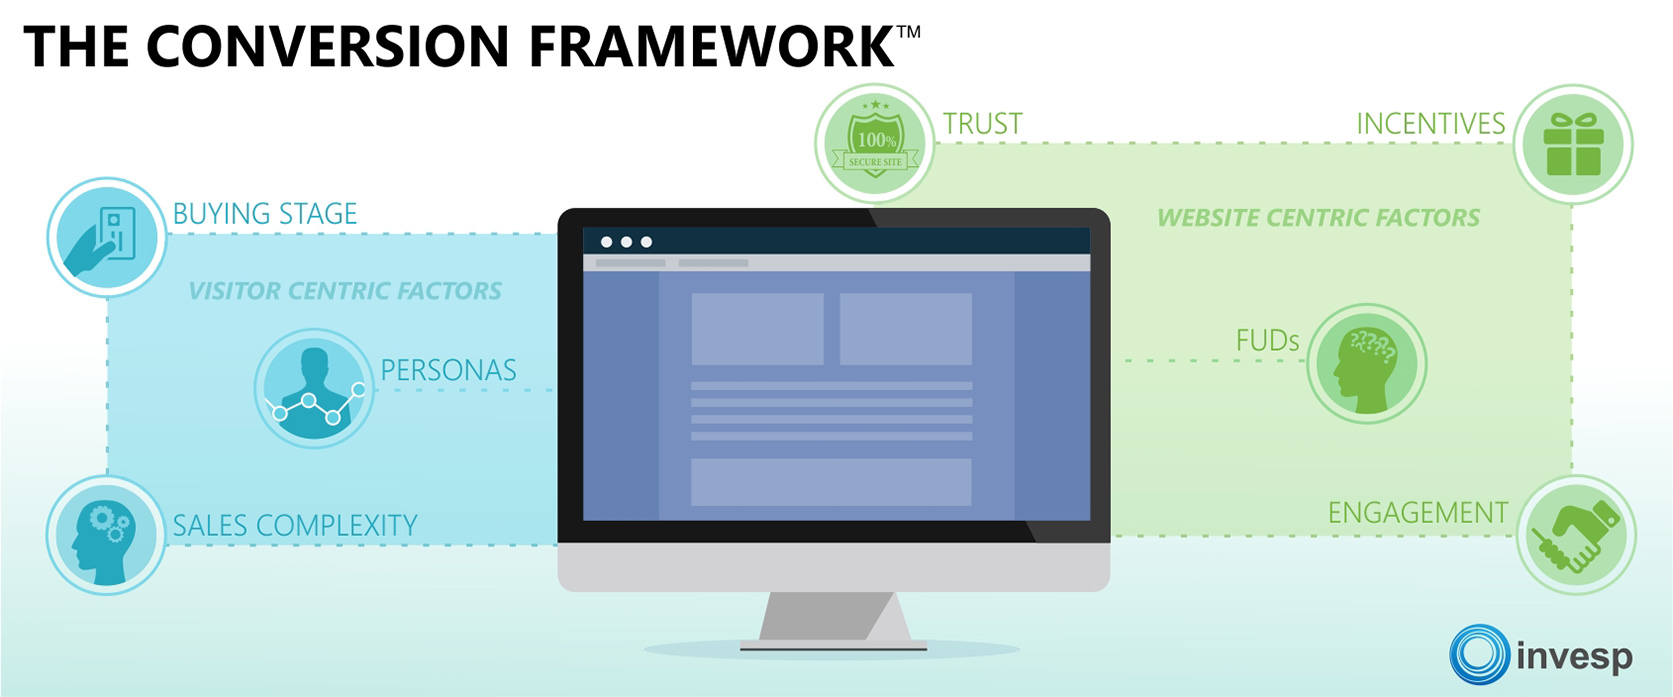 The conversion framework by Invesp